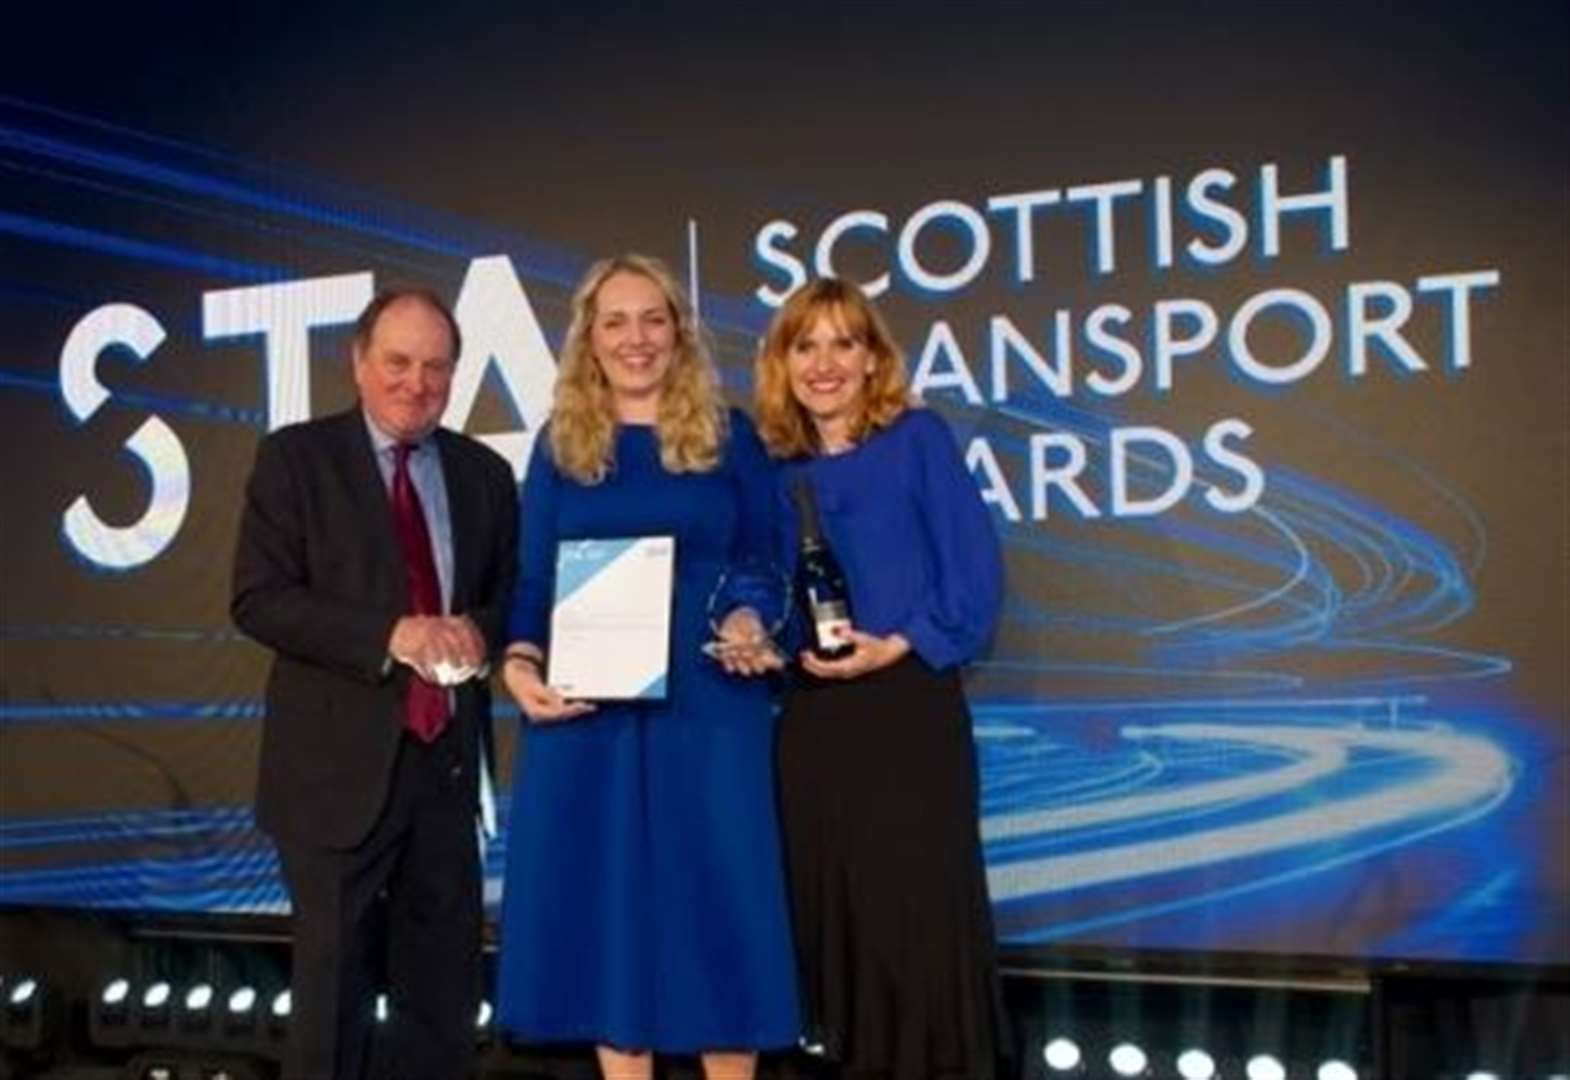 Local authority project wins at national awards